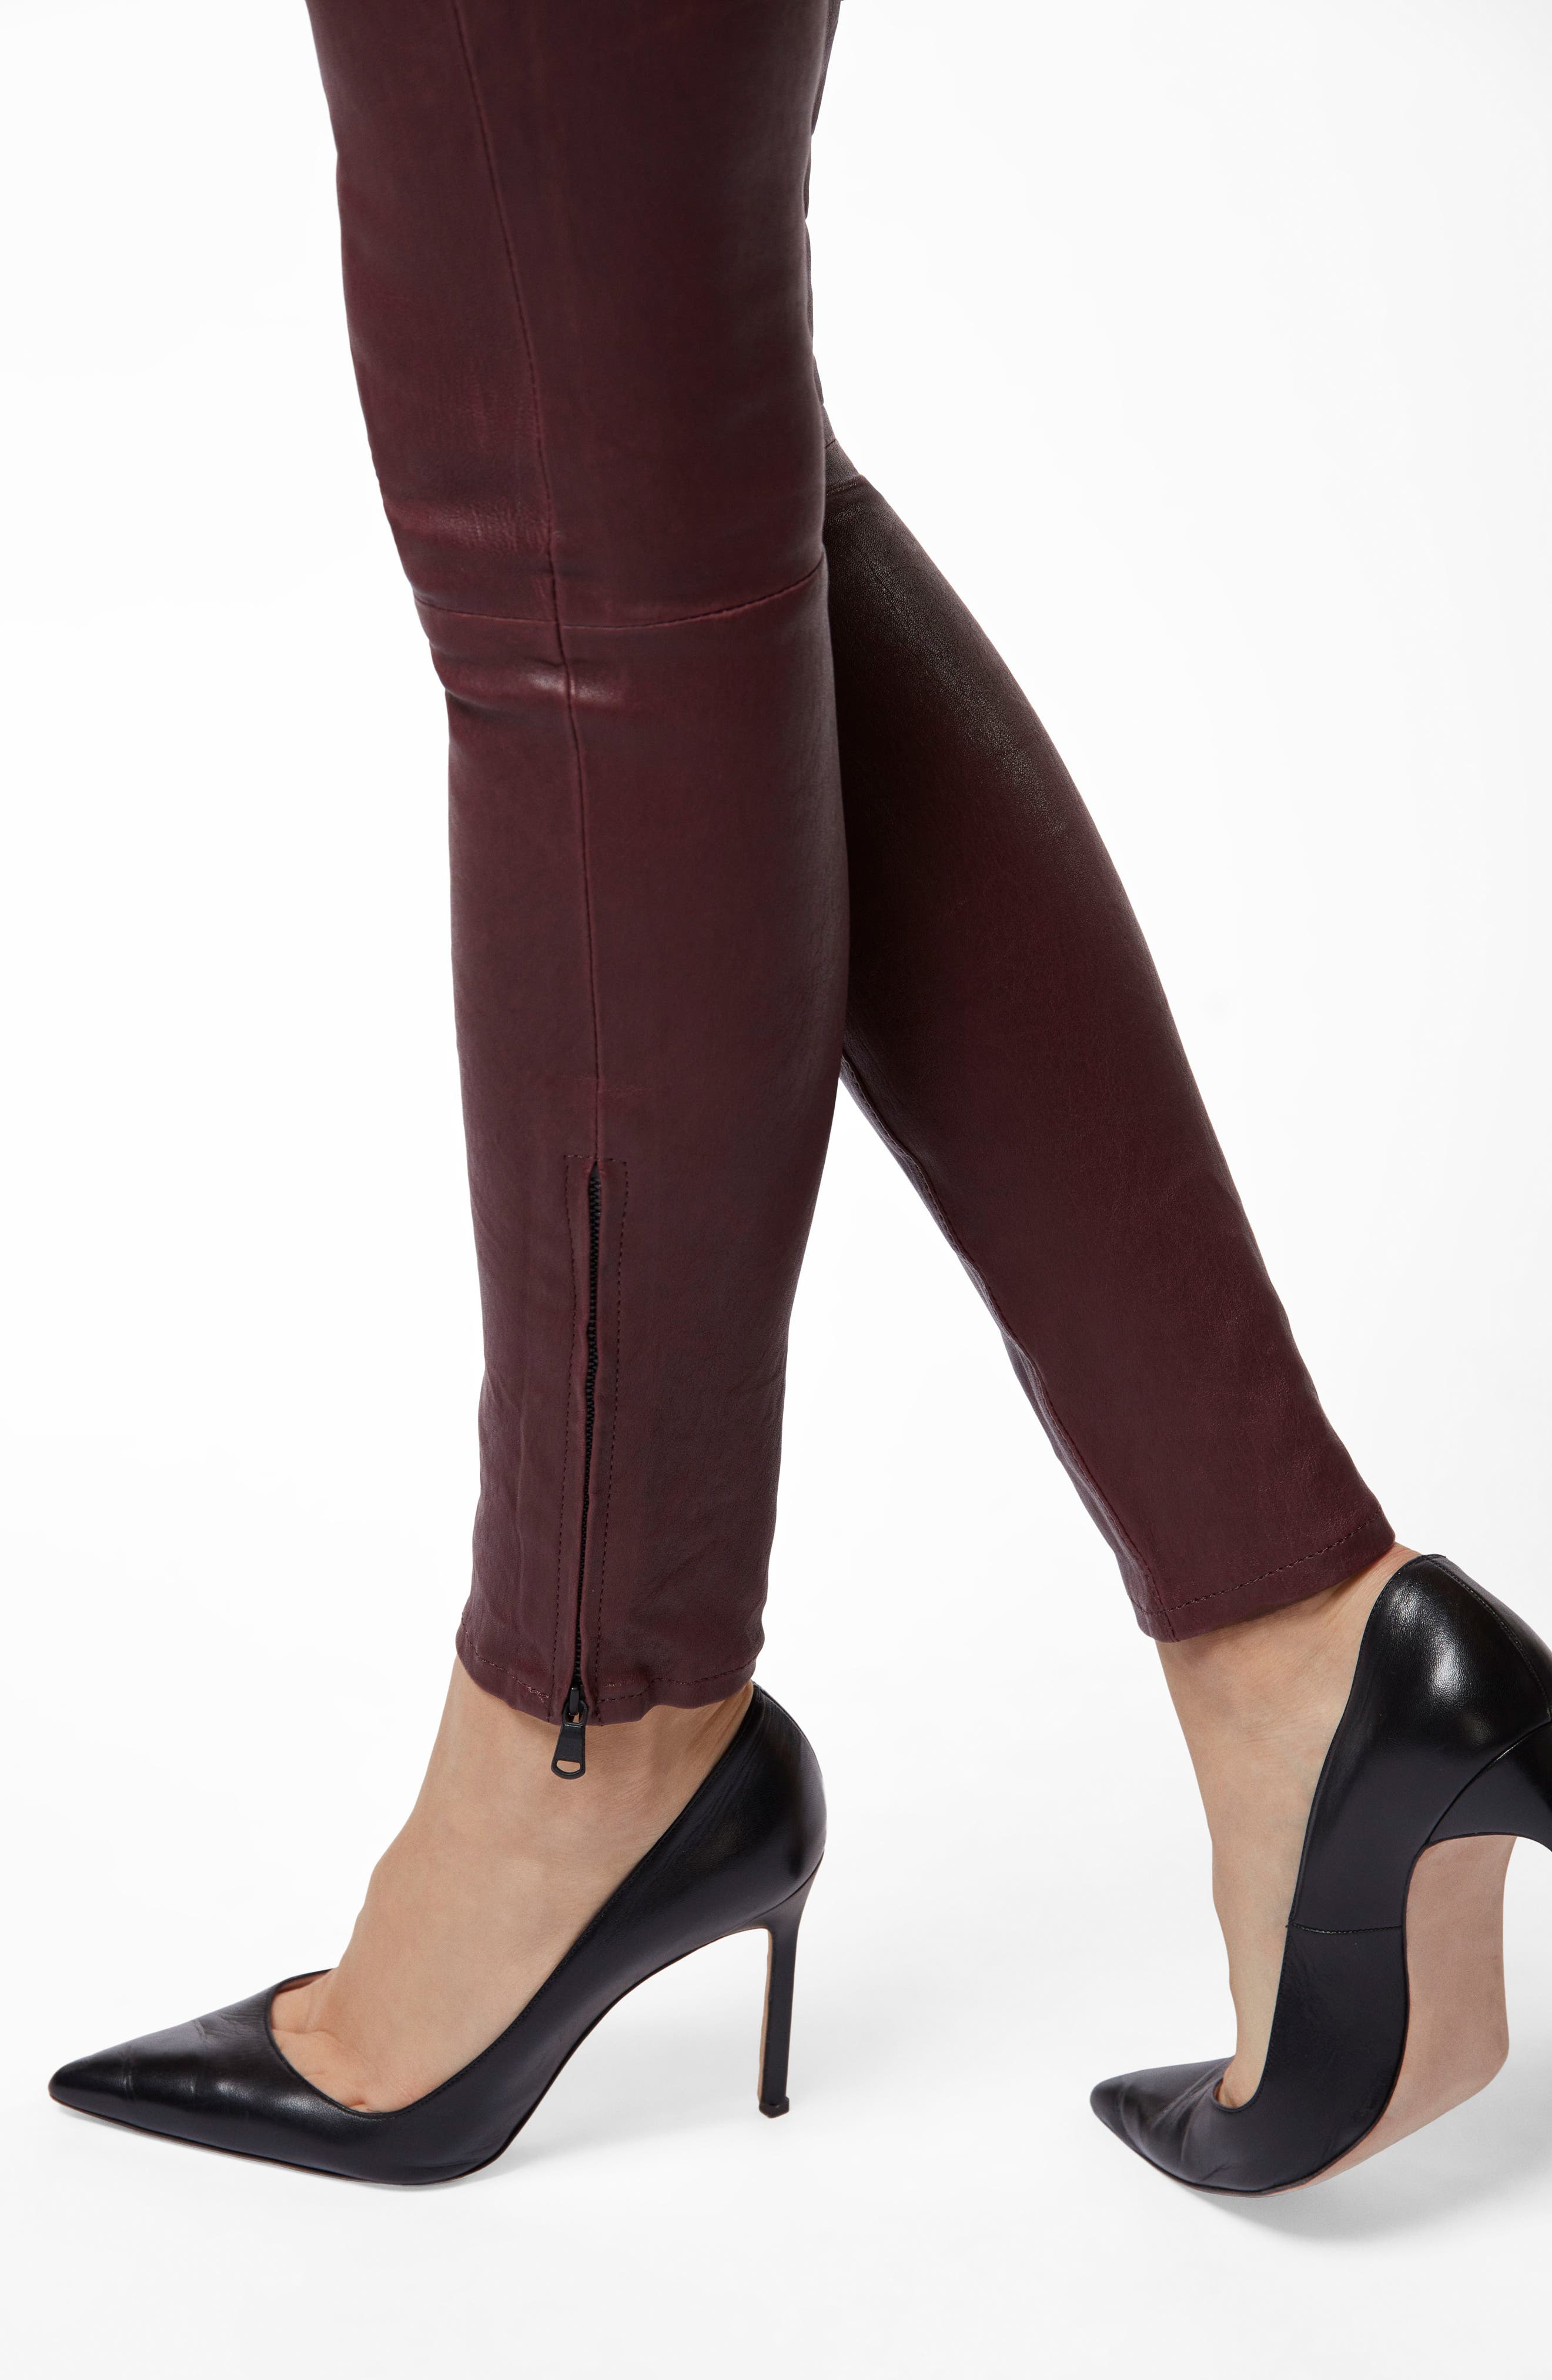 '8001' Lambskin Leather Pants,                             Alternate thumbnail 6, color,                             510